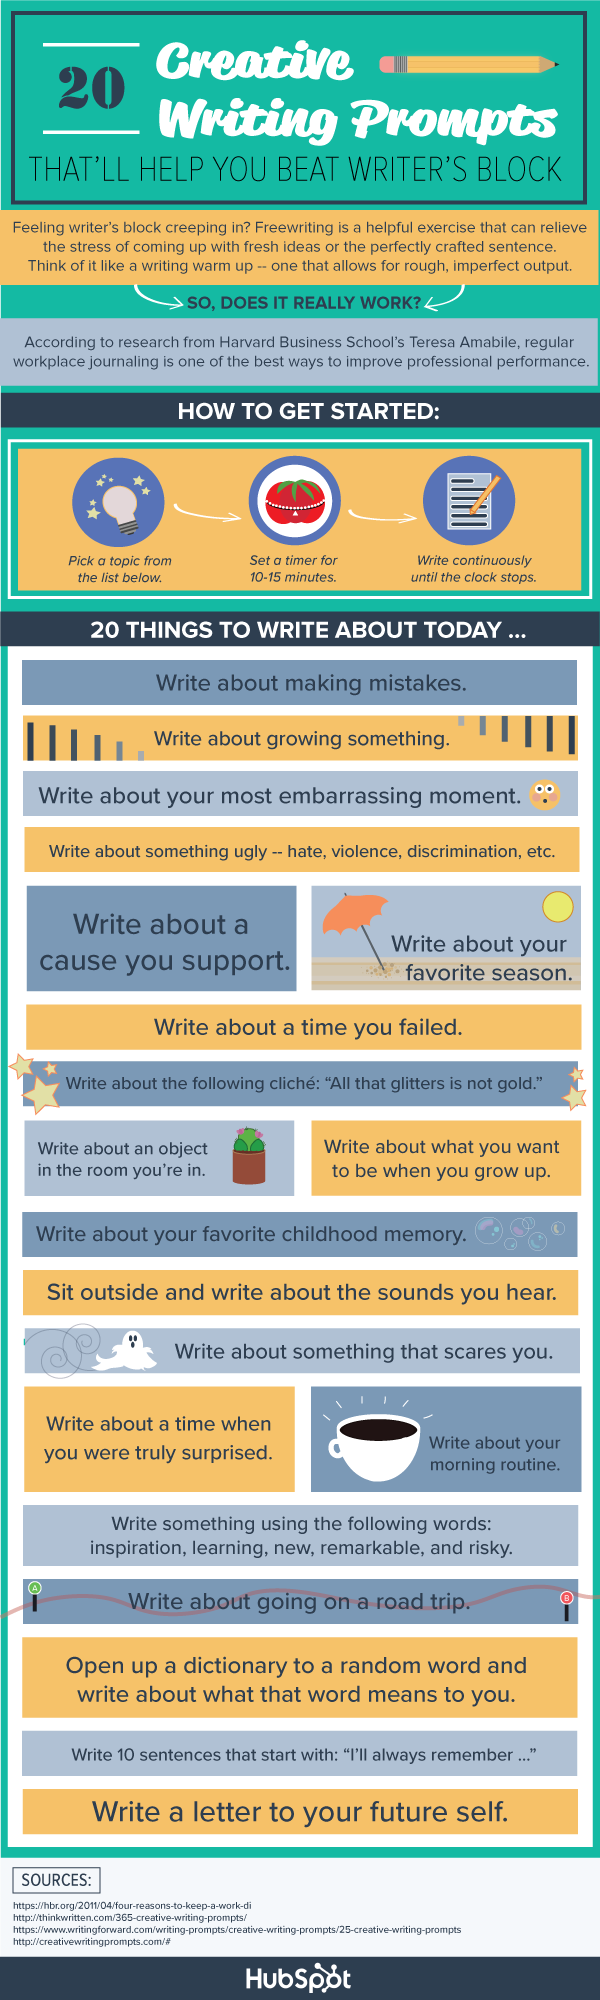 Creative-Writing-Prompts-Infographic-Final